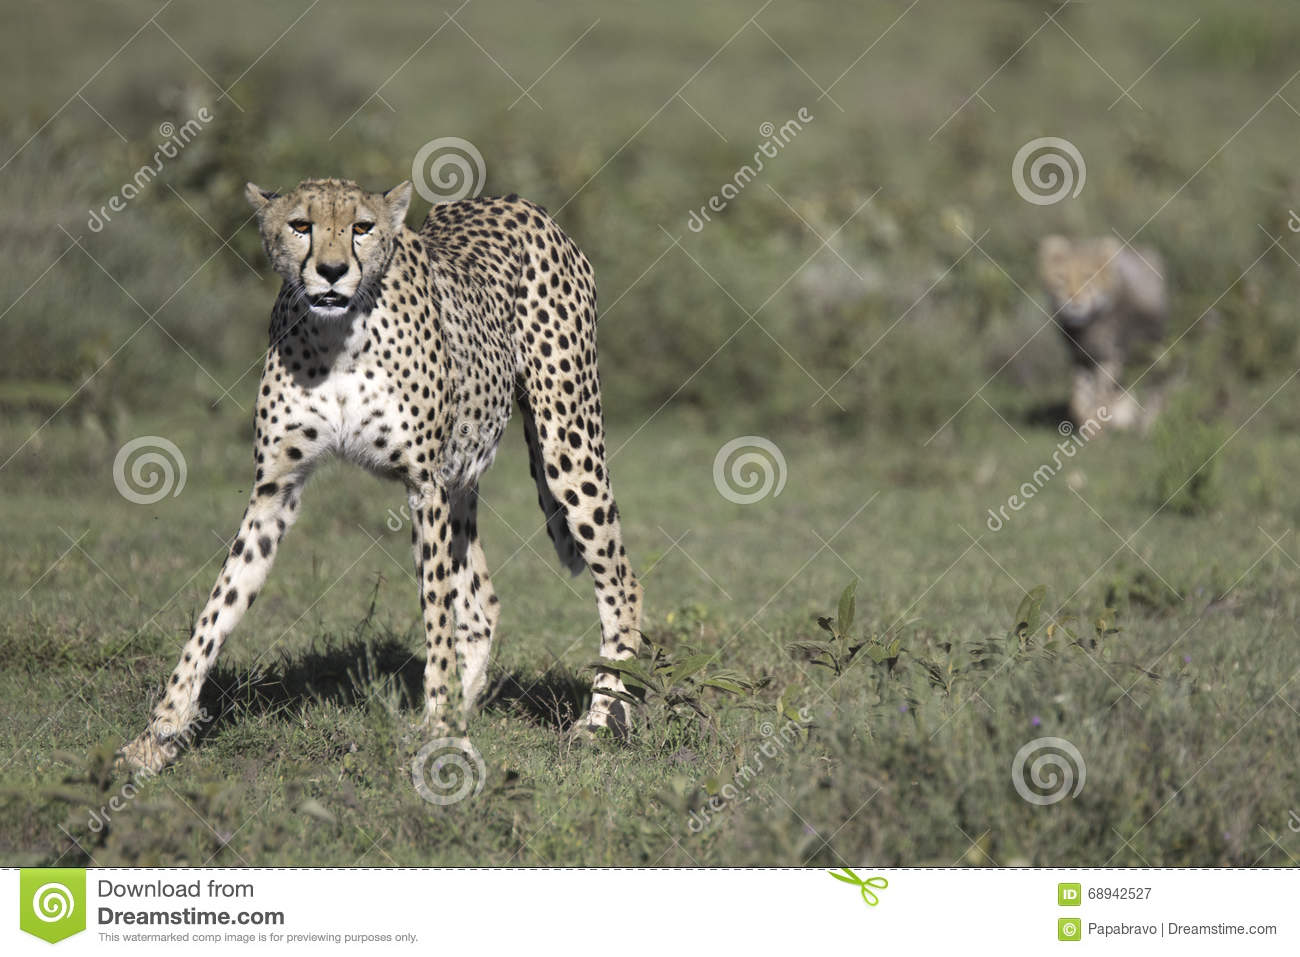 A biography of the cheetah in its natural habitat